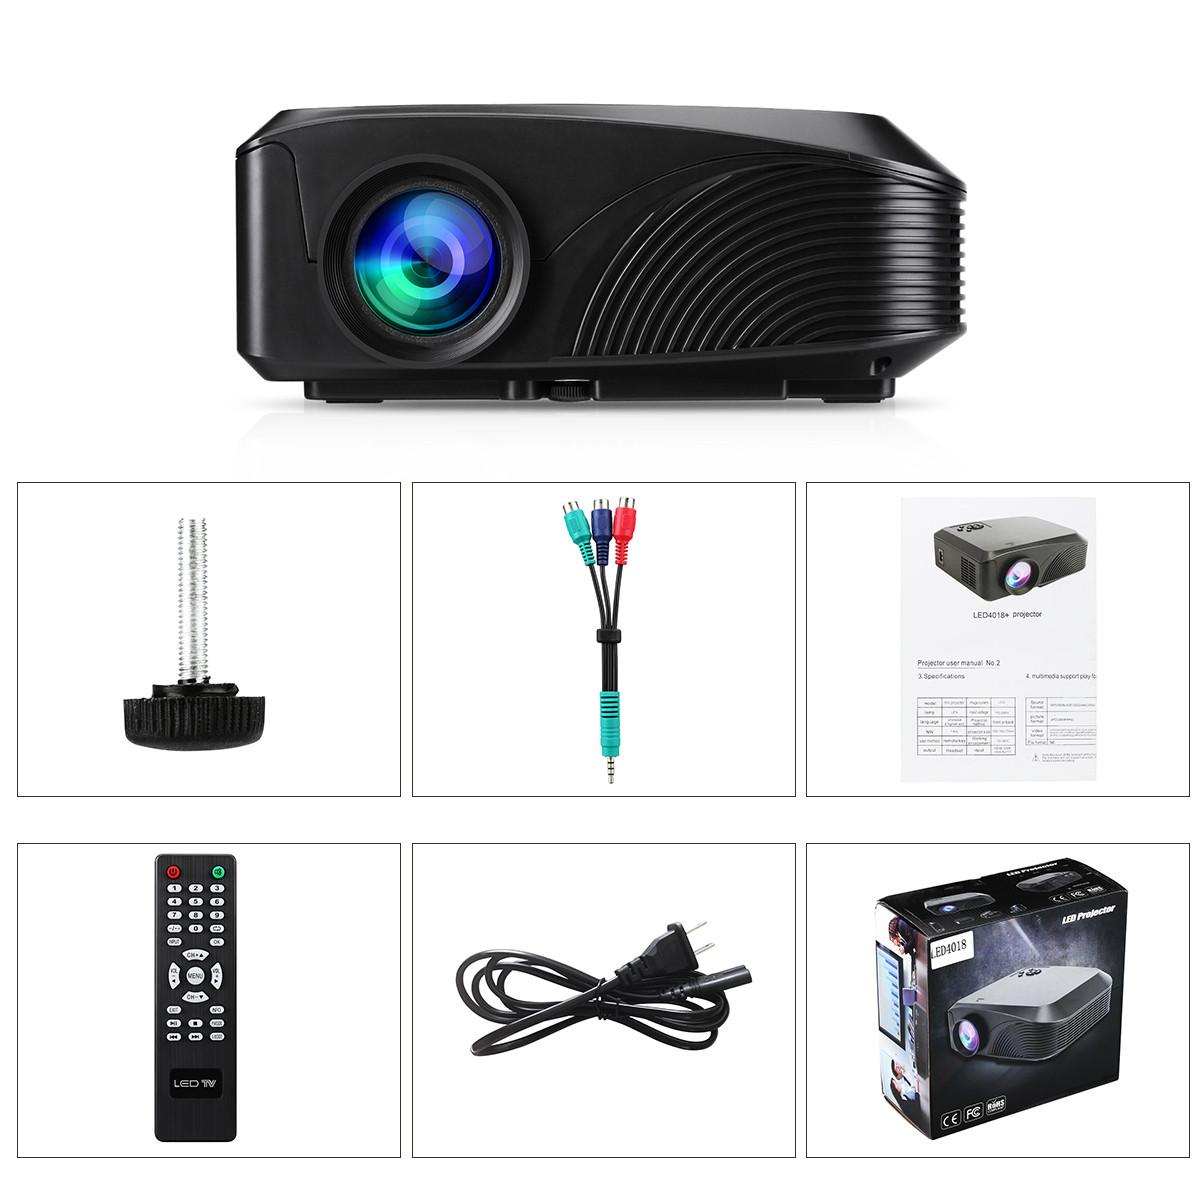 Excelvan LED-4018 Portable 1200 Lumens 800*480 Support 720P 1080P ...